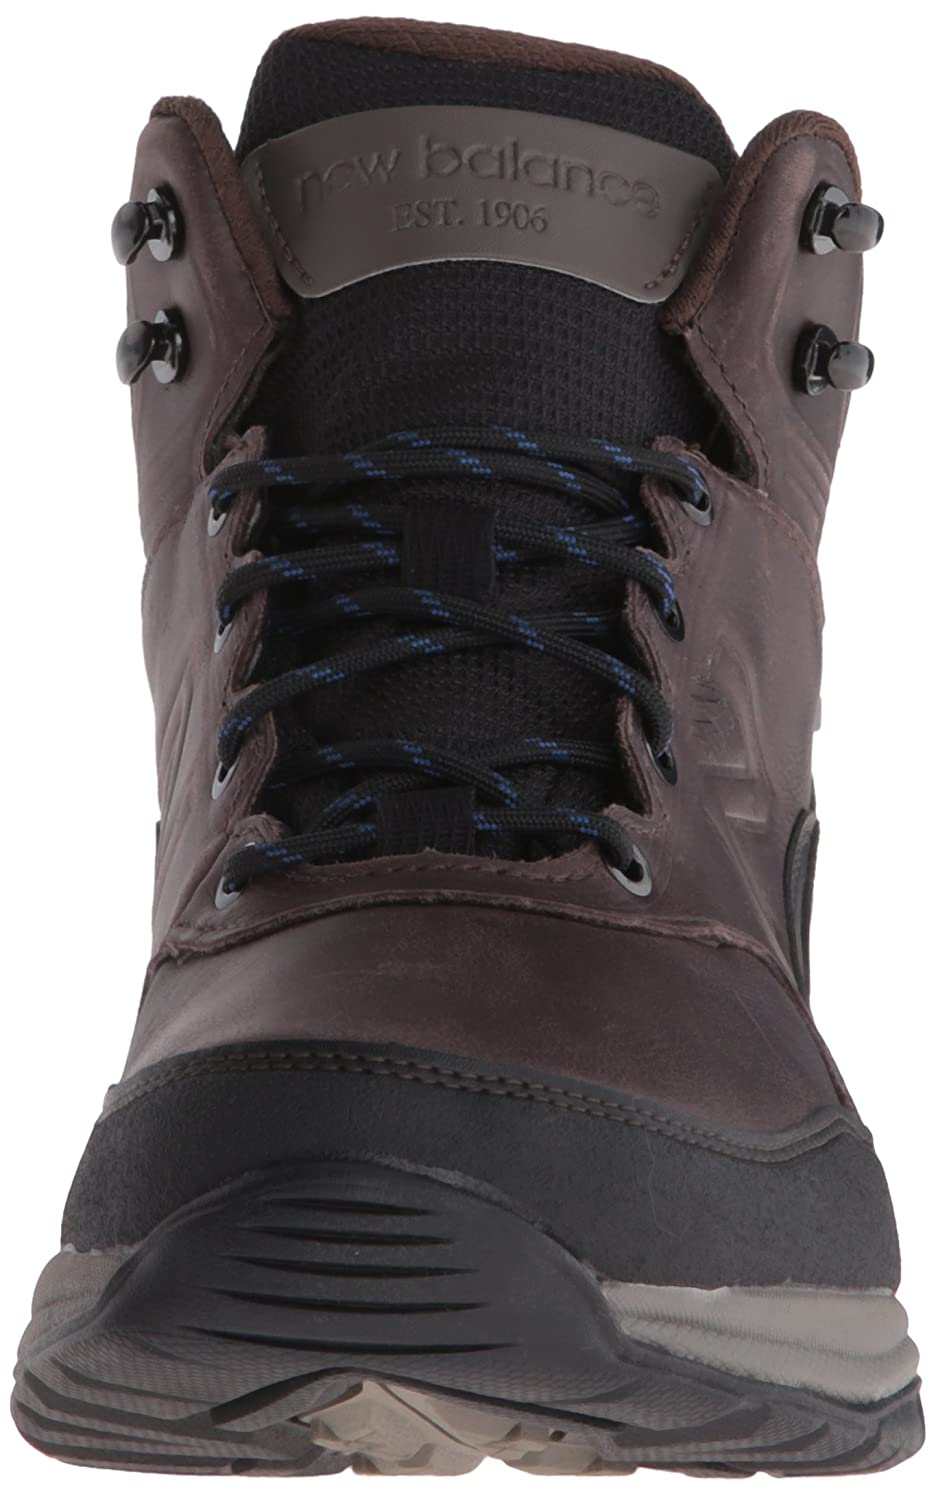 8c8f9b1aa325f New Balance Men's's 1400v1 High Rise Hiking Boots: New Balance:  Amazon.co.uk: Shoes & Bags